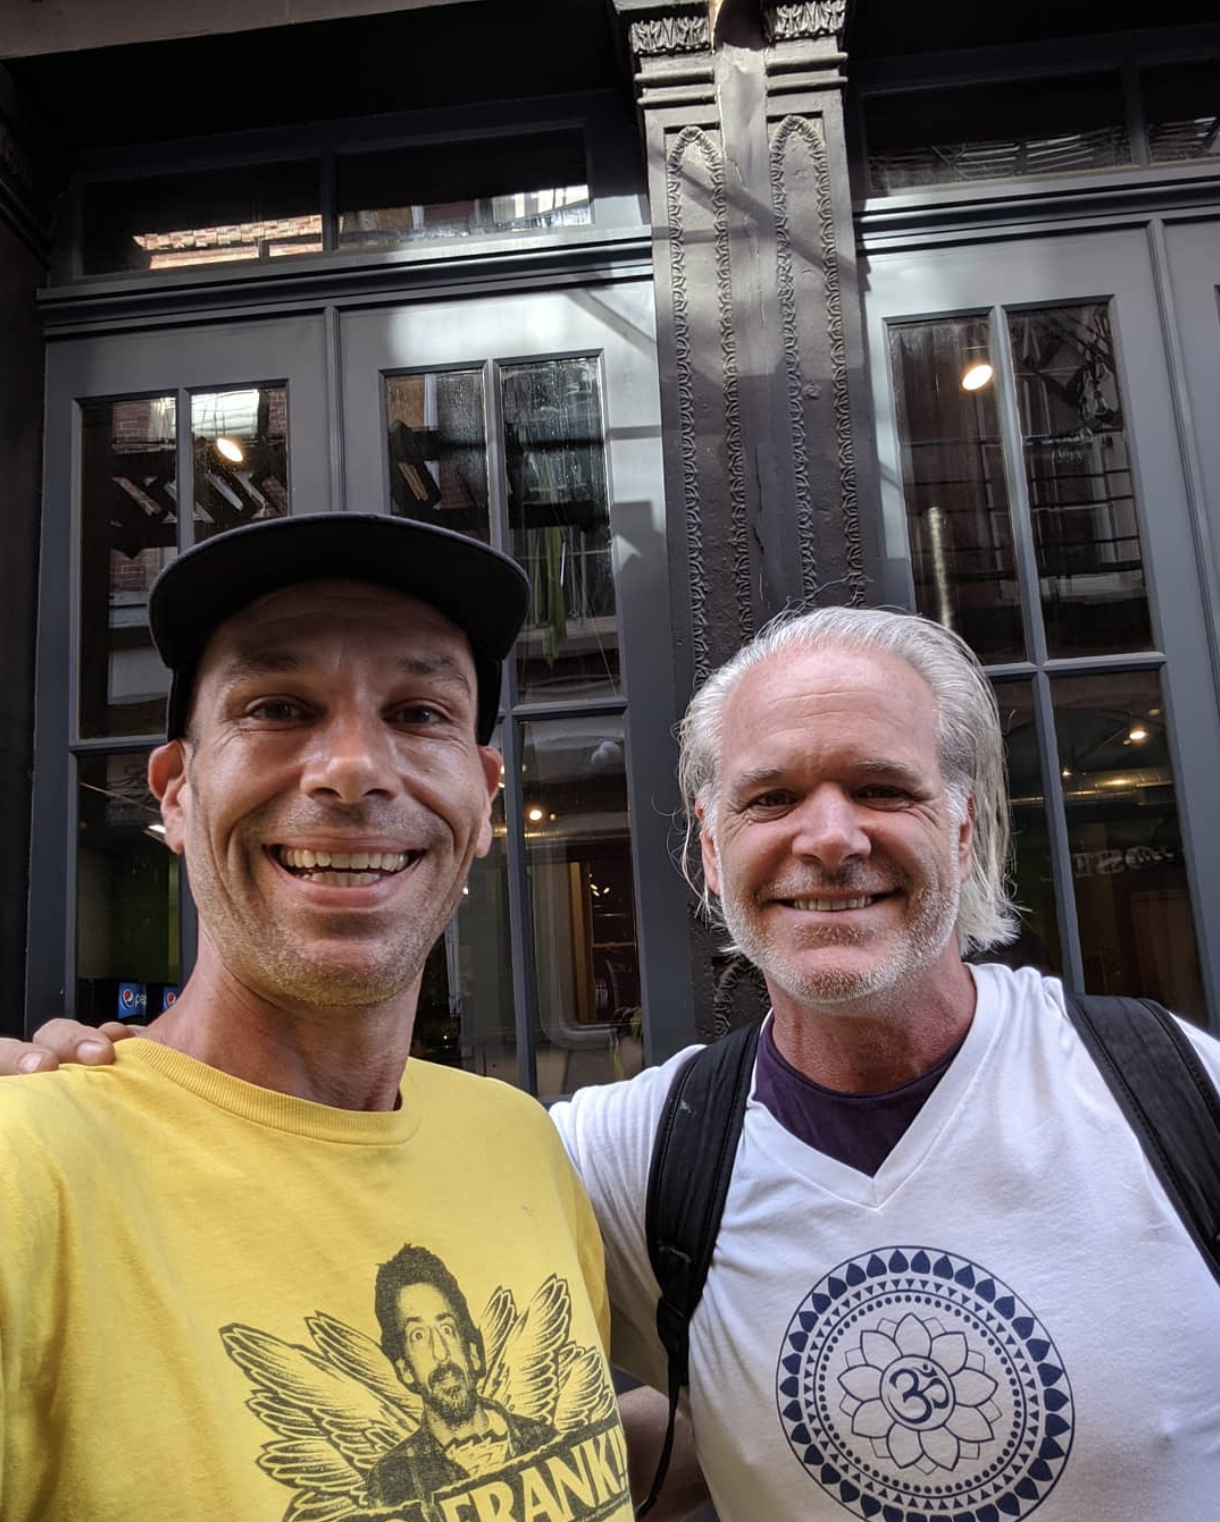 Mark Nordstrom wearing a yellow shirt and standing next to a man in a white shirt